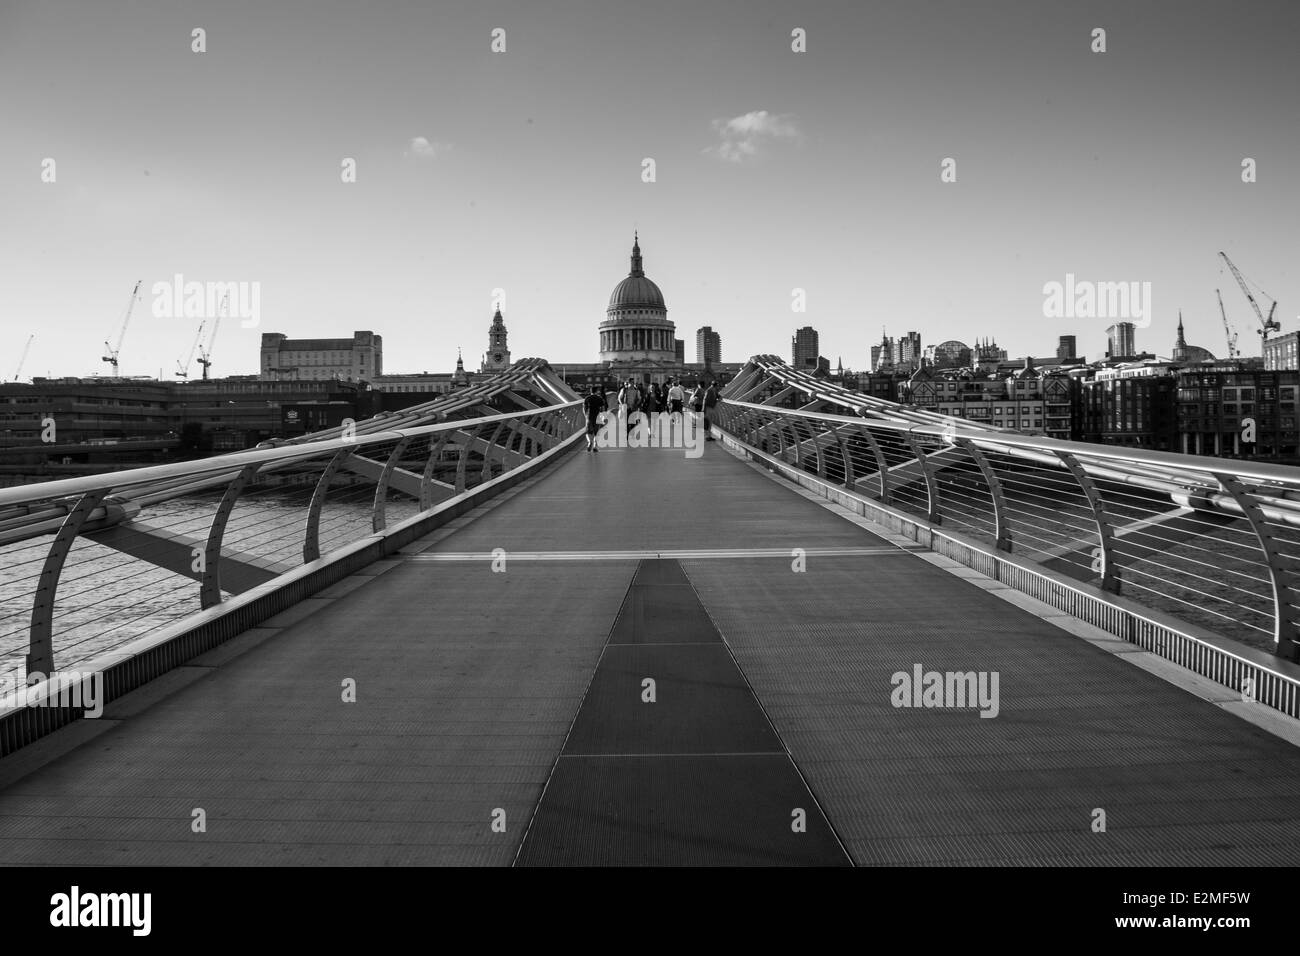 Millennium Bridge London black and white - Stock Image